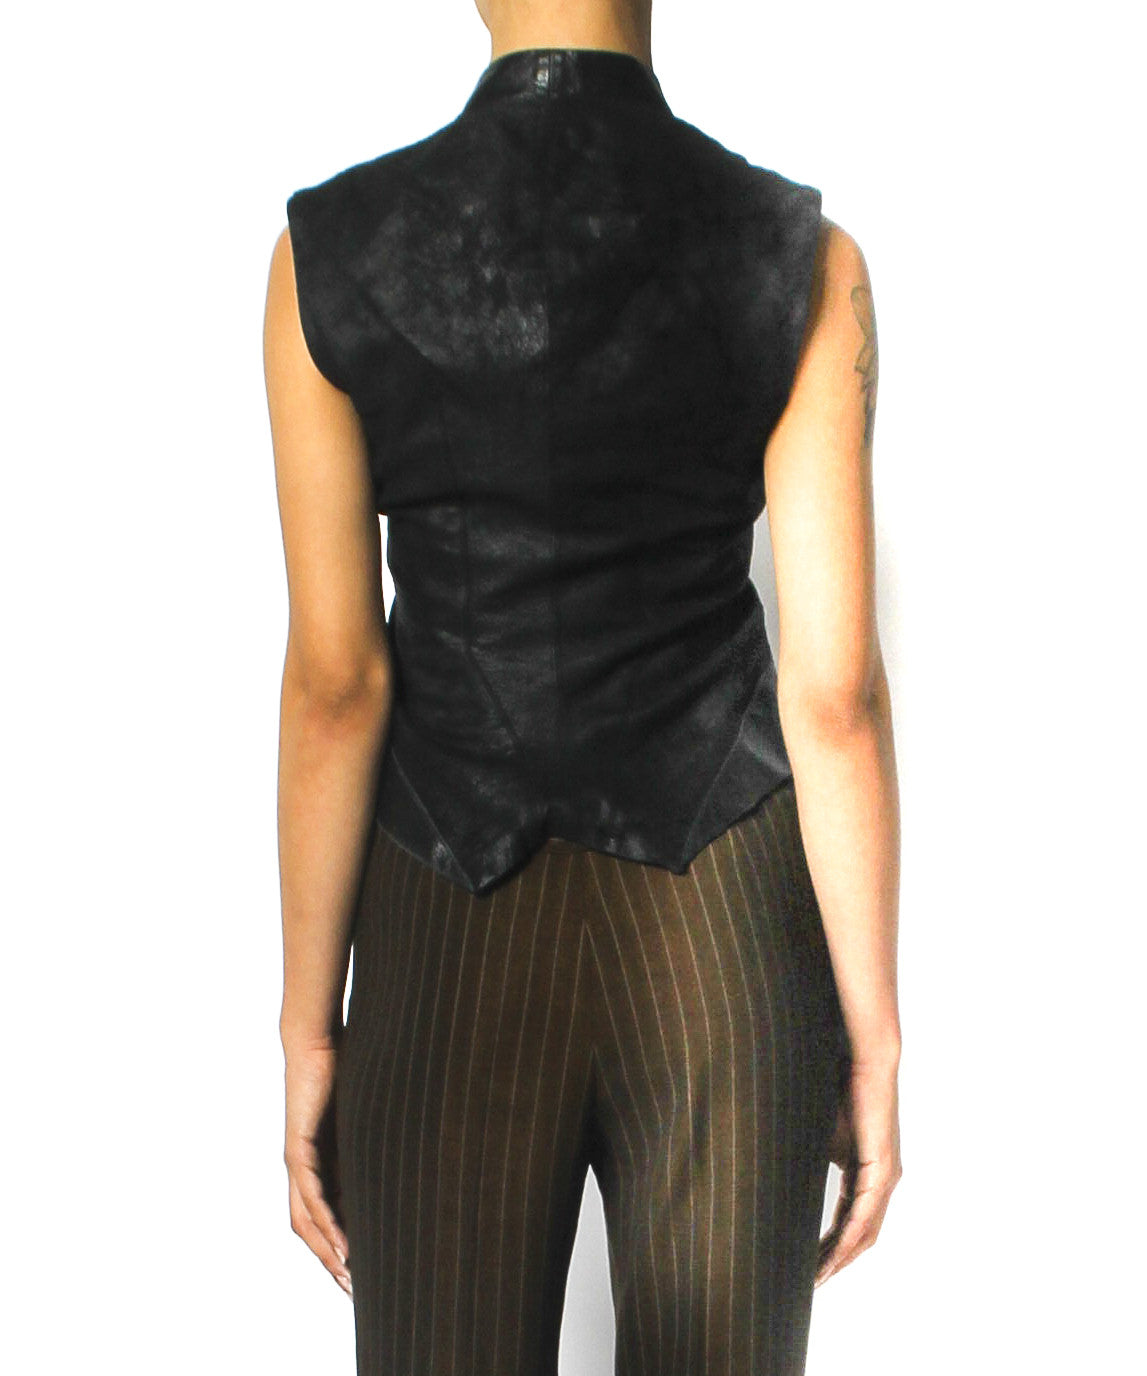 Rick Owens Black Leather Fitted Vest - C.Madeleine's